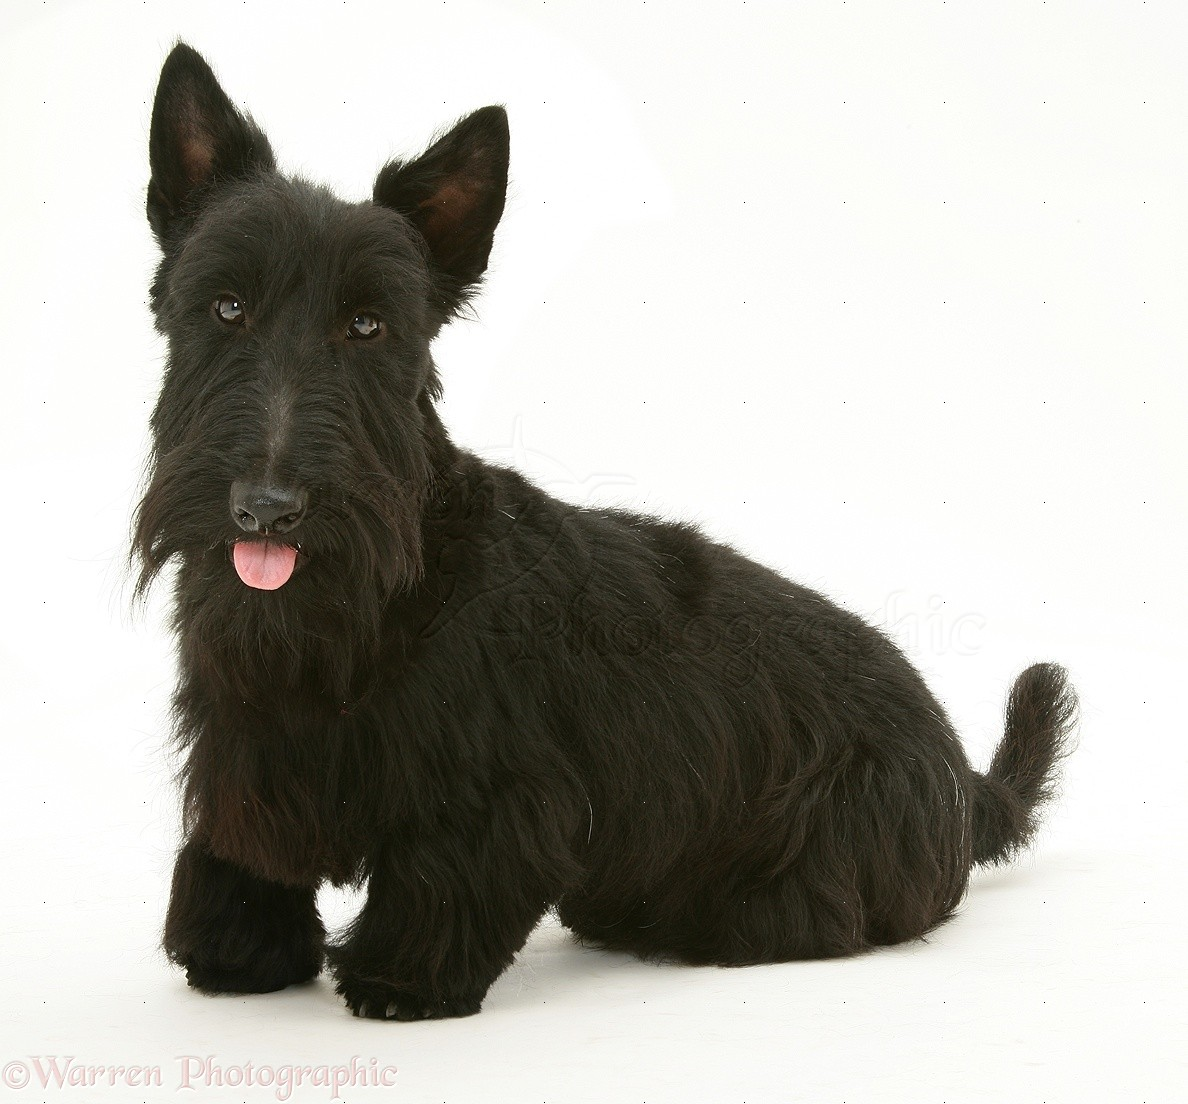 Wp10355 scottish terrier angus with his tongue out